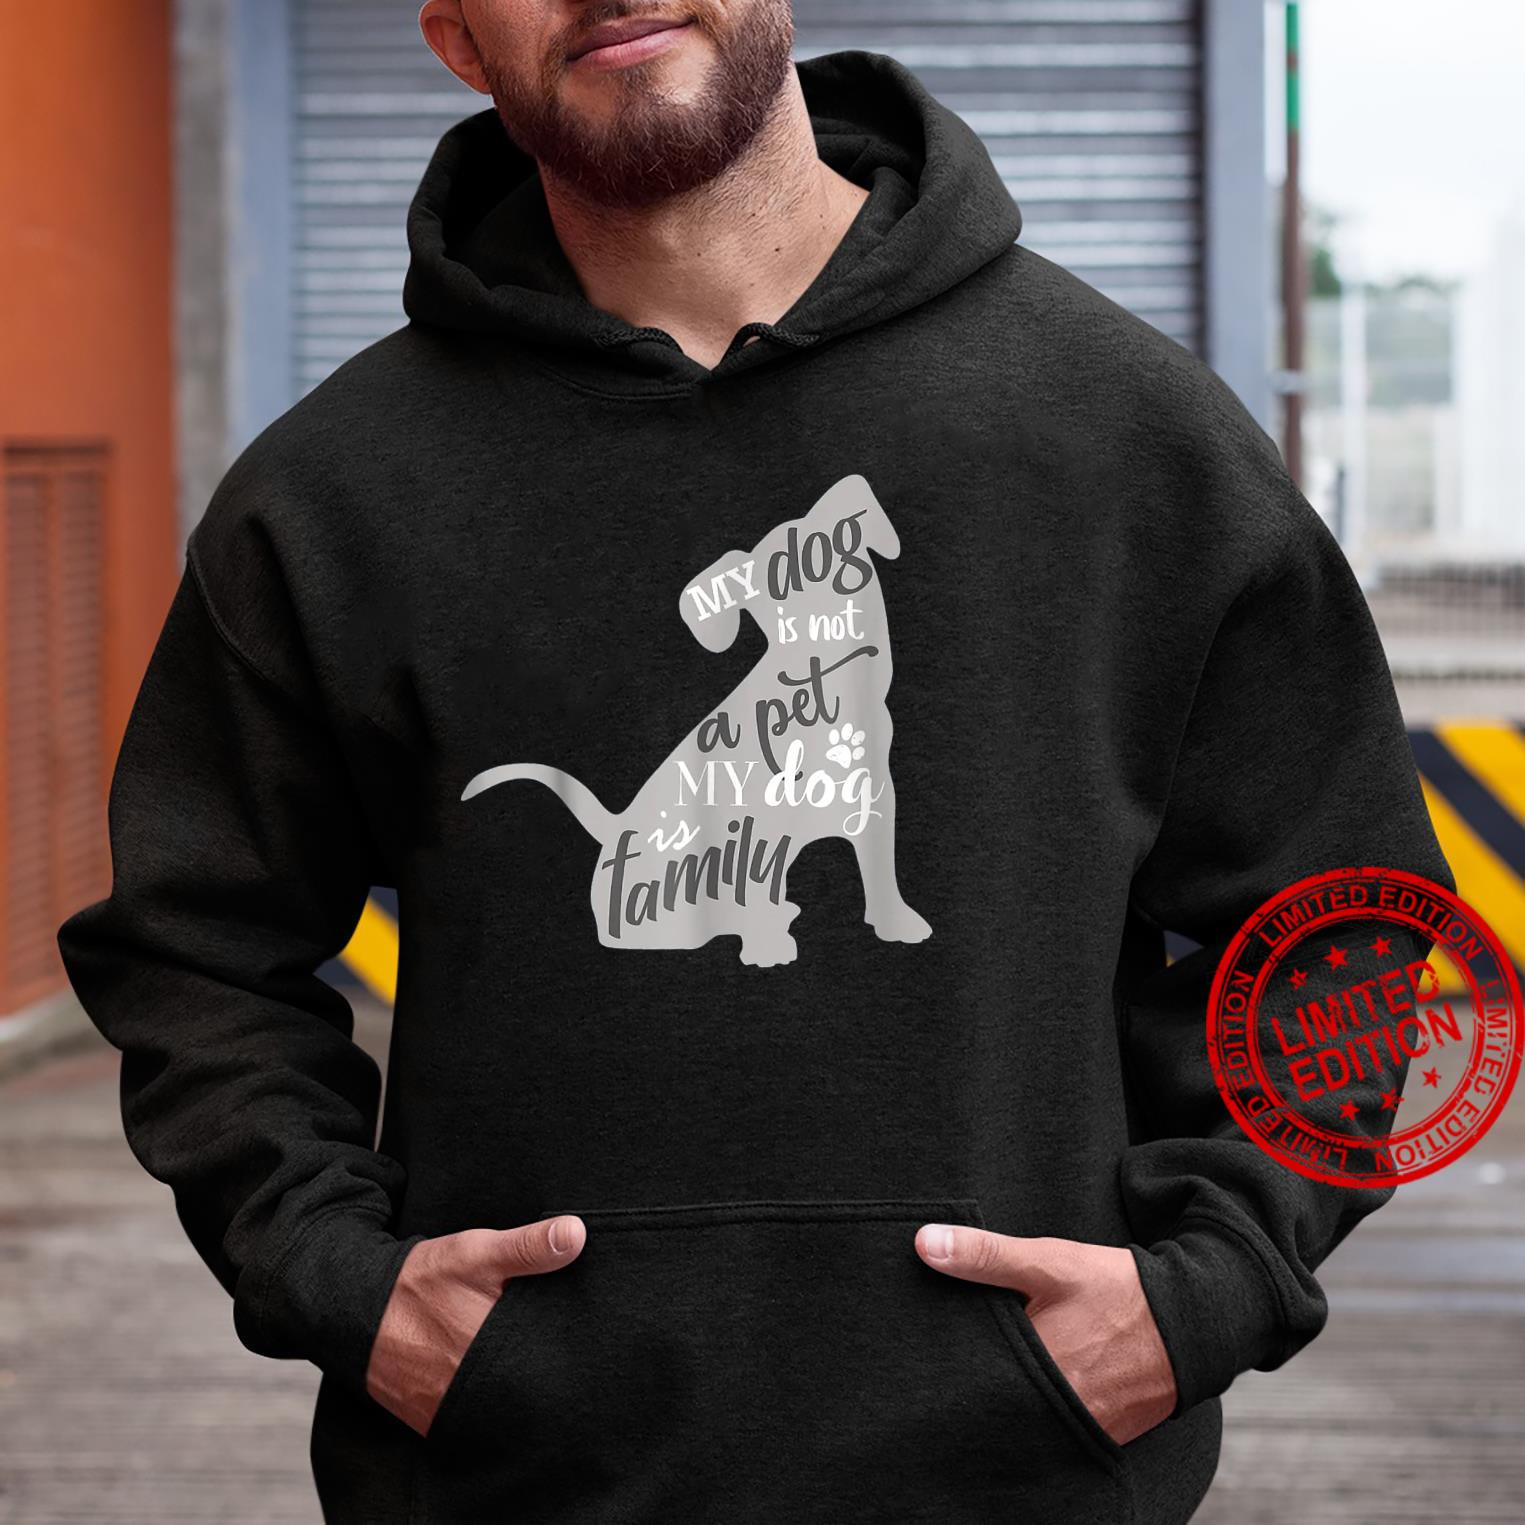 My Dog Is Not A Pet My Dog Is Family For Dog Shirt hoodie